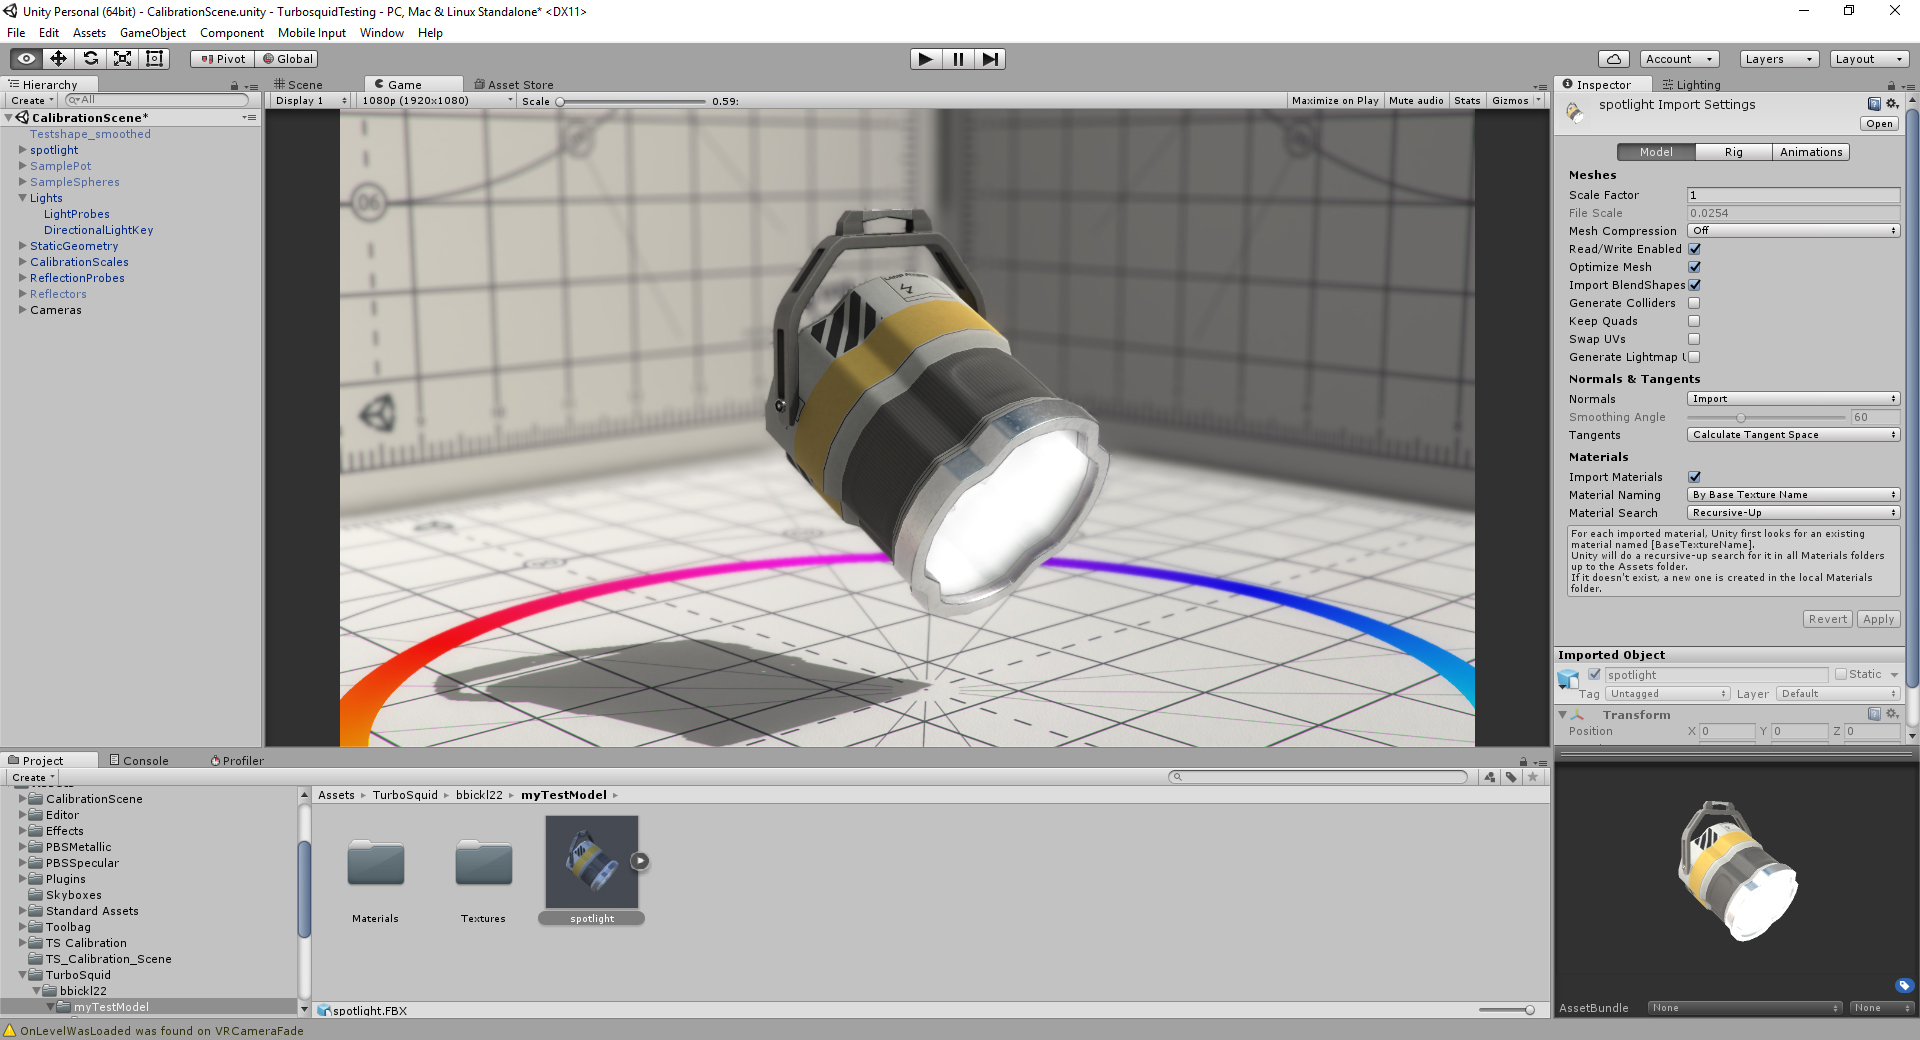 3D Model in Unity Engine